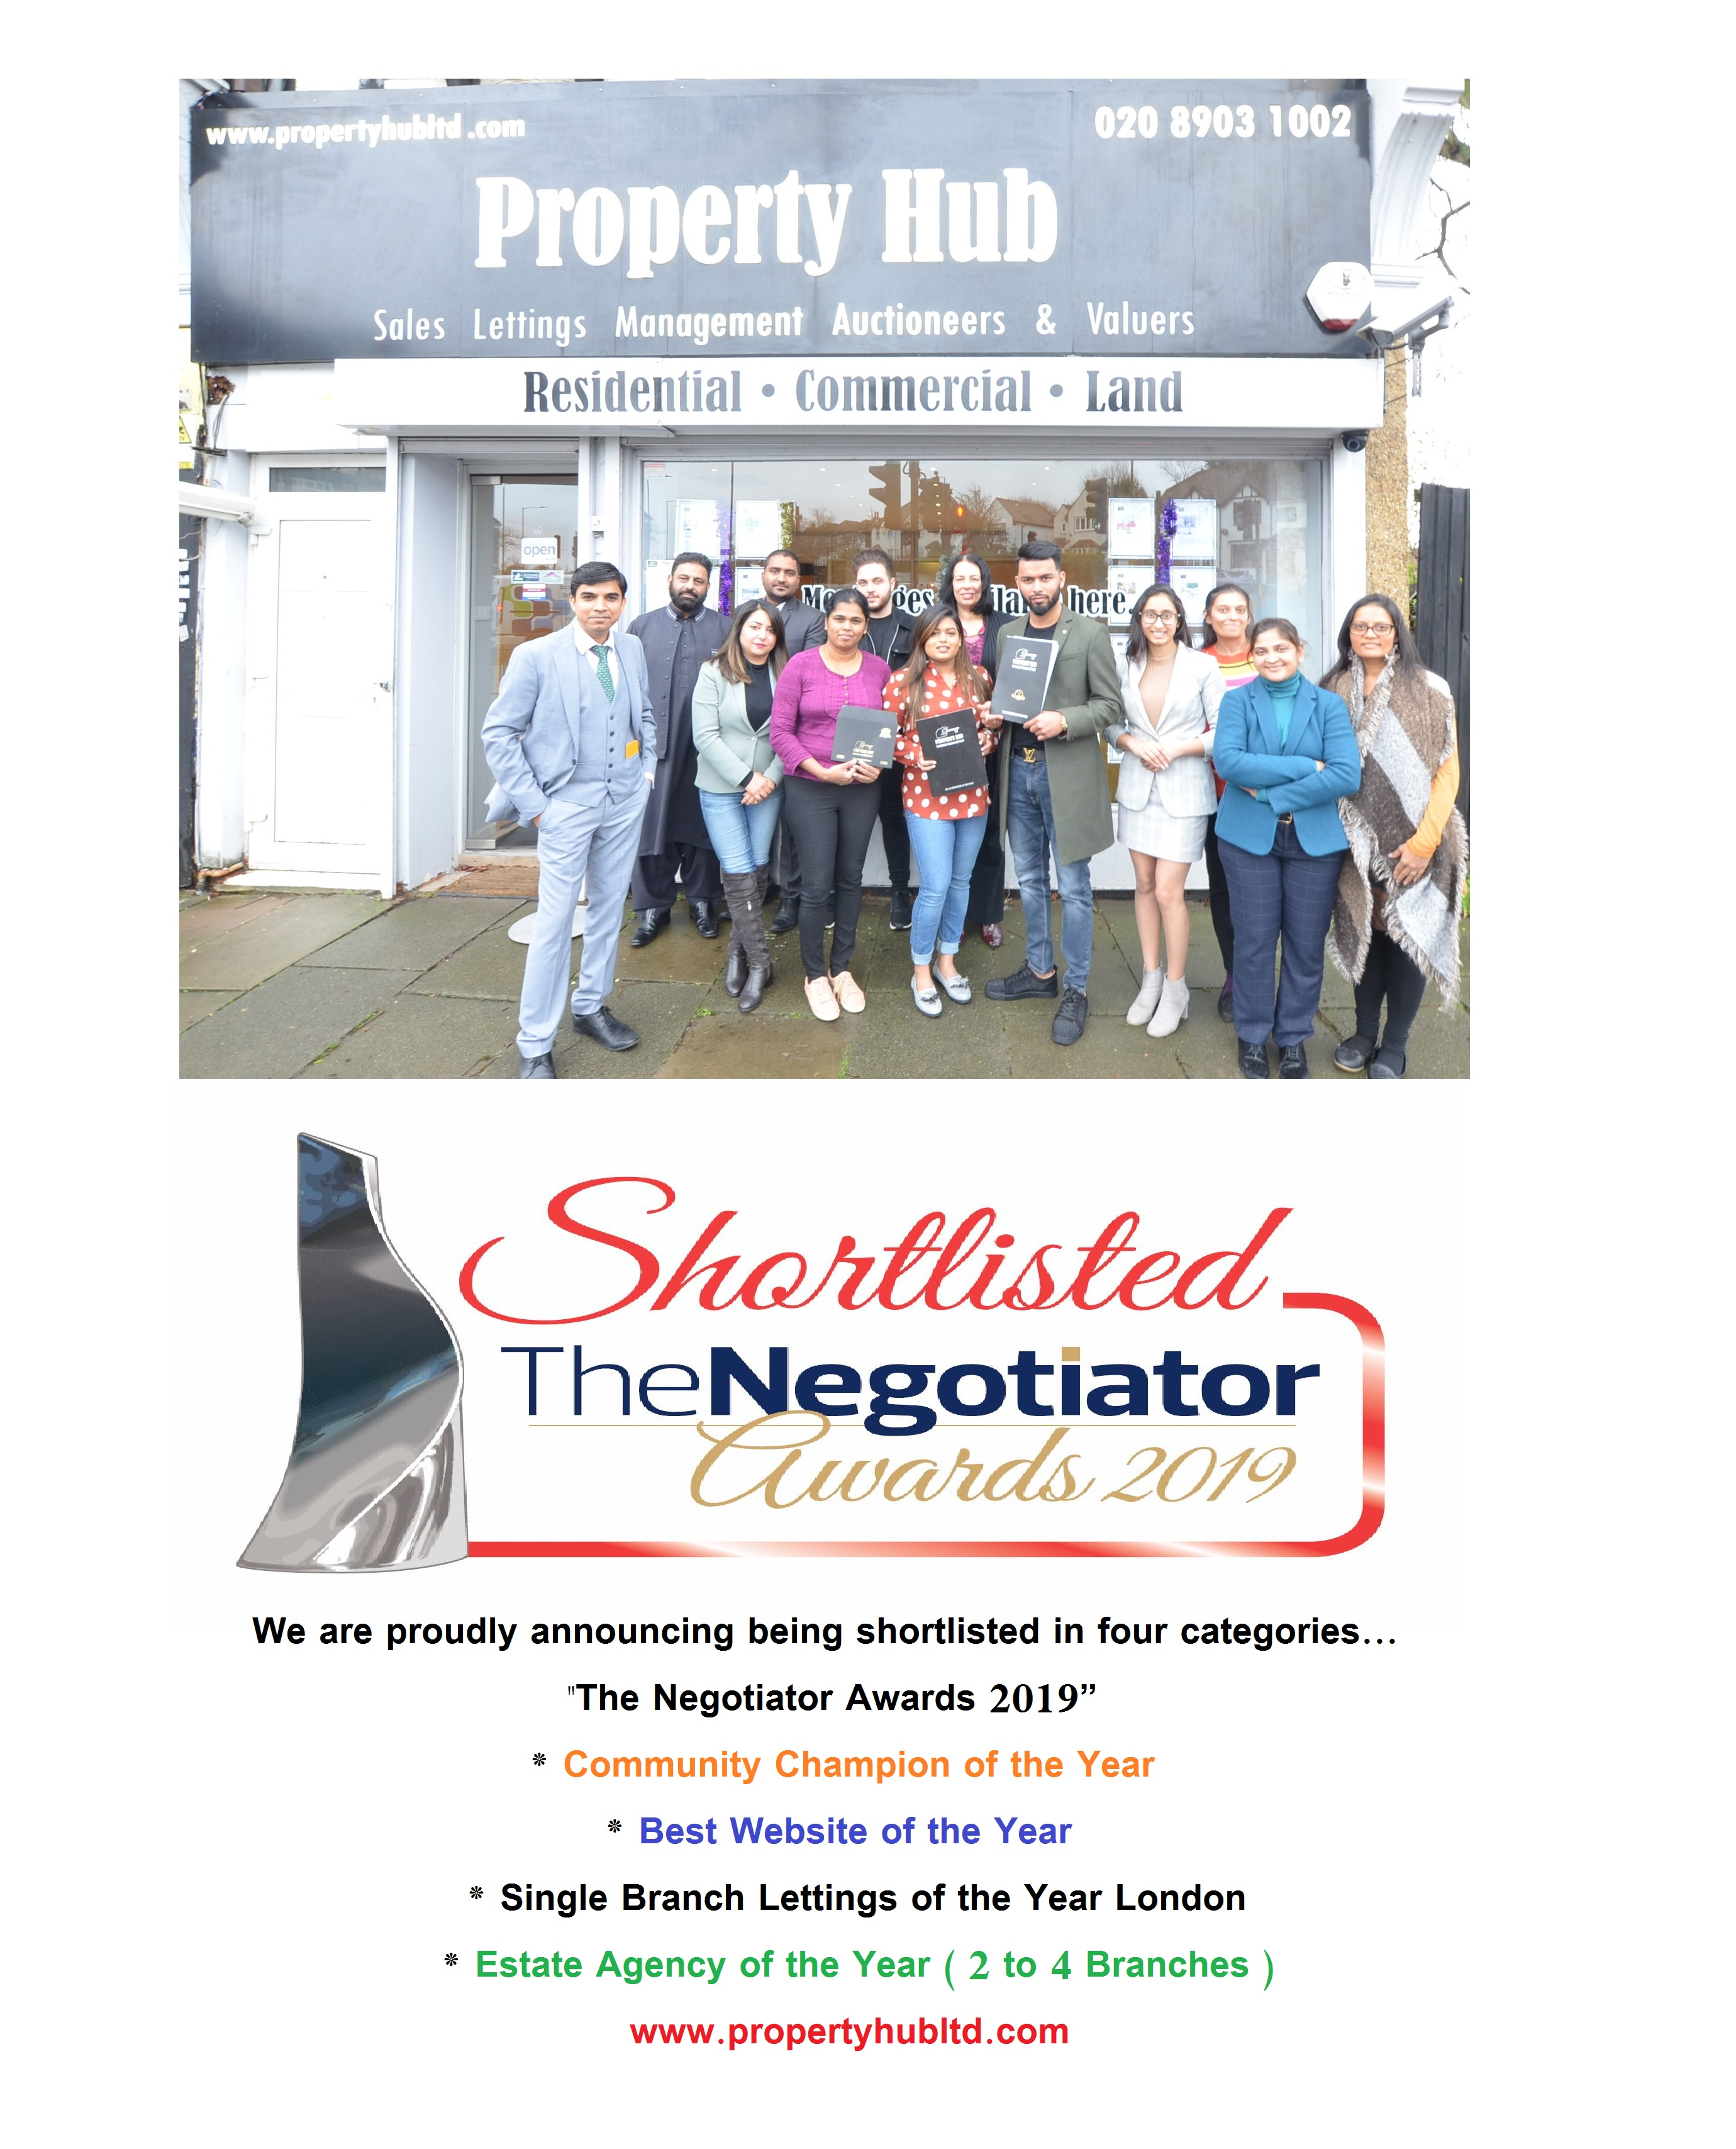 PROPERTY HUB SHORTLISTED FOR THE NEGOTIATORS AWARD